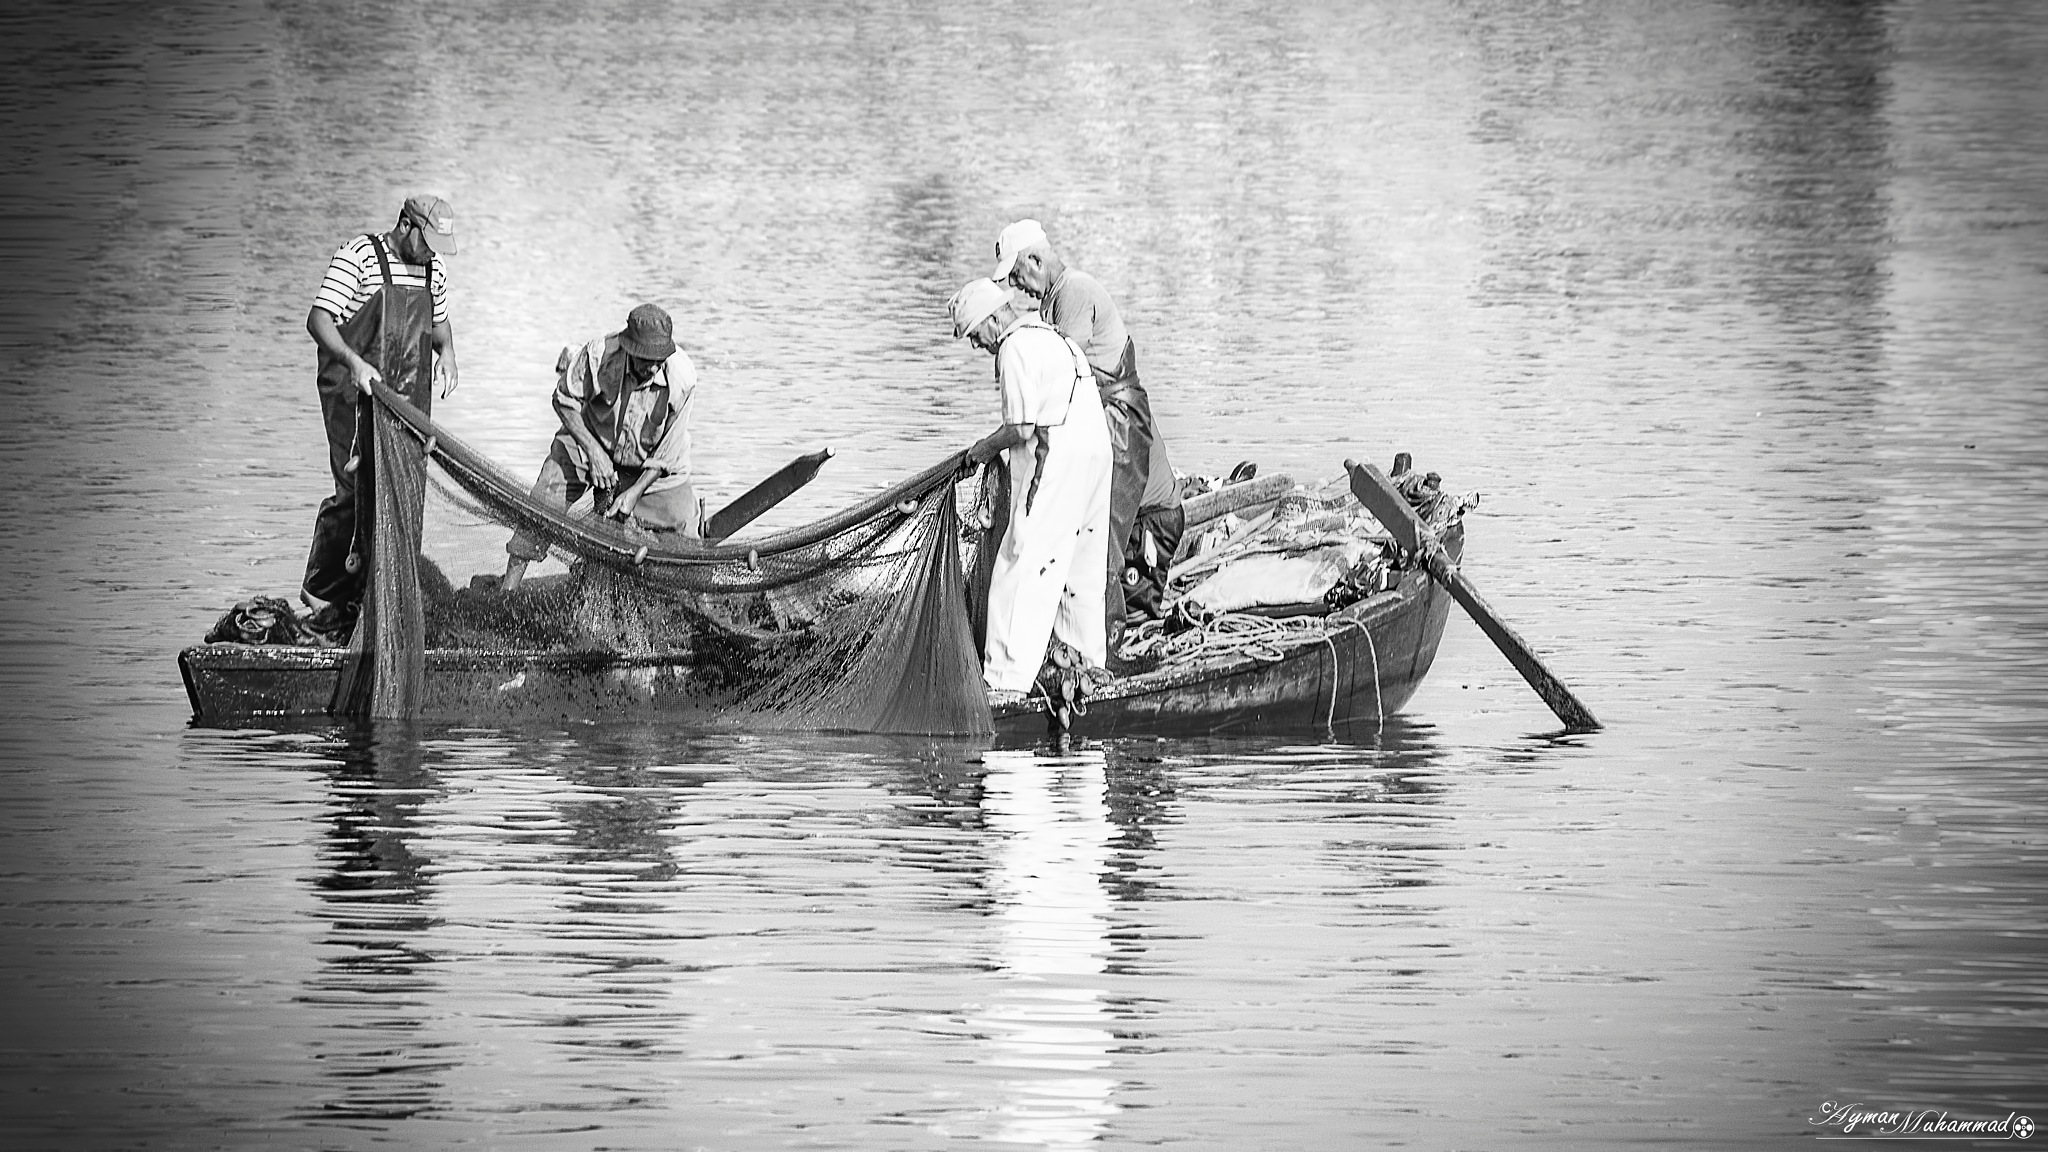 Small fishing boat with hard work by AymanMuhammad